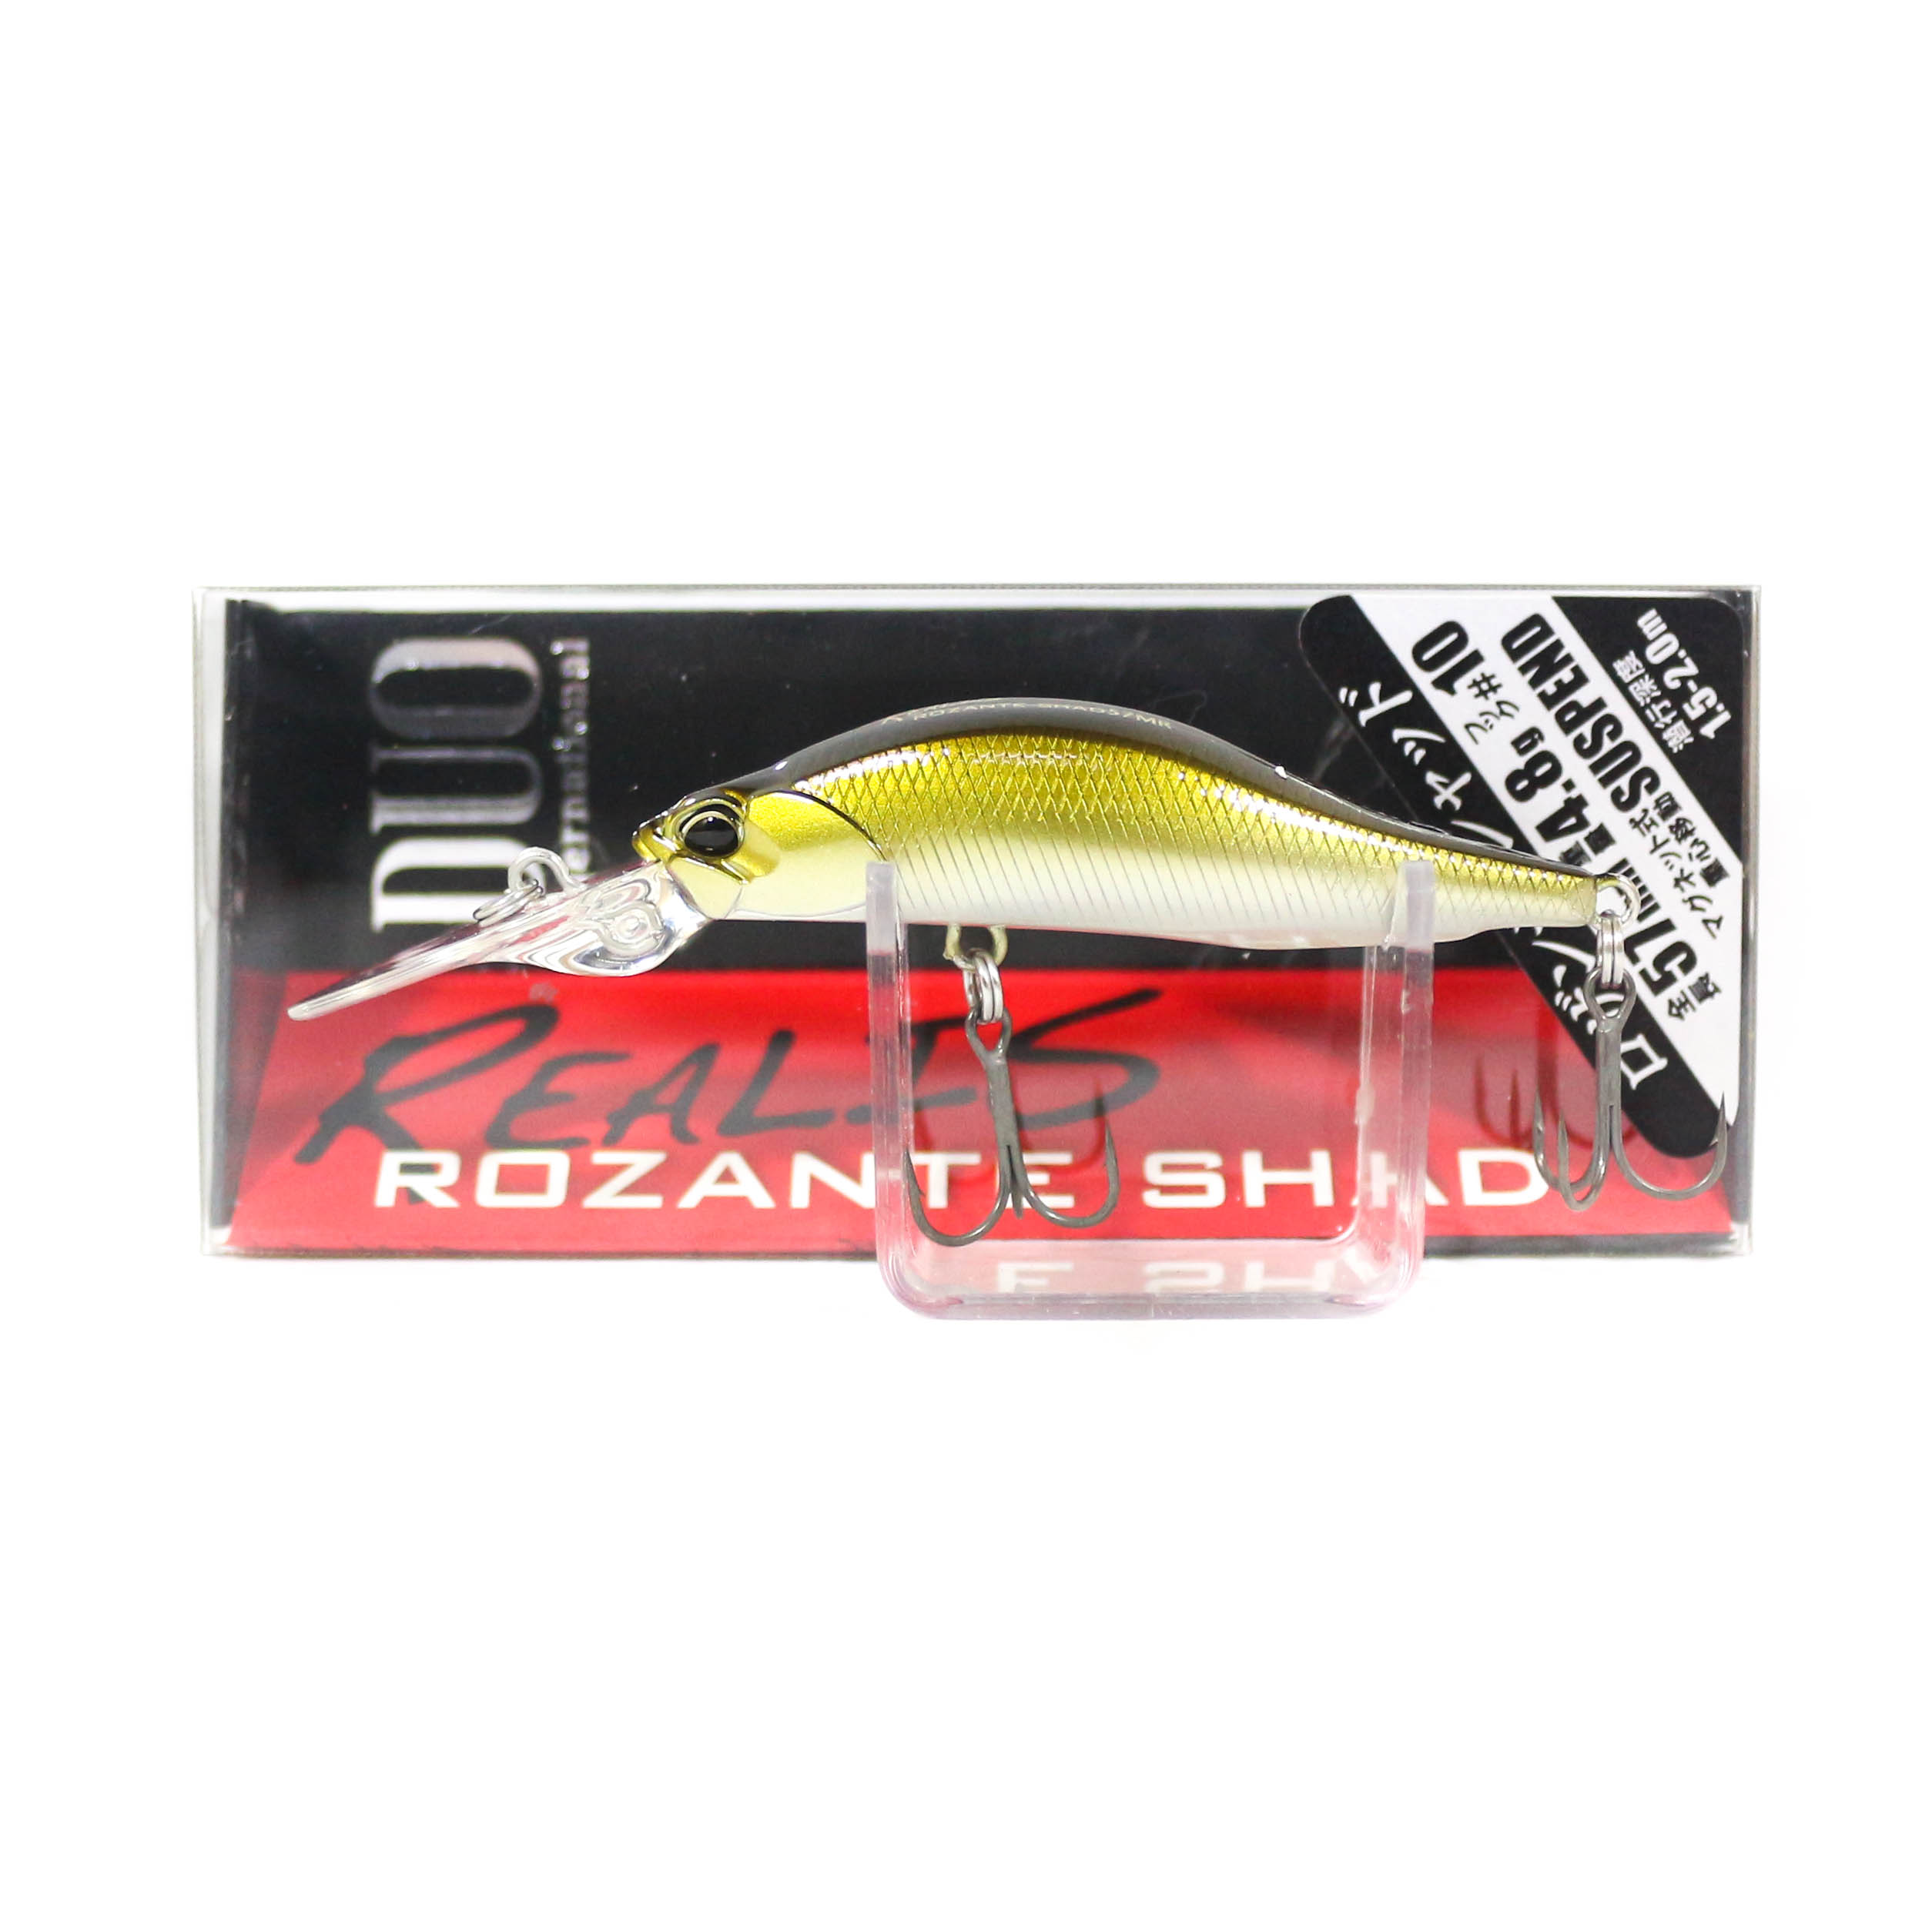 Duo Realis Rozante Shad 57 MR Suspend Lure CCC3107 (9263)